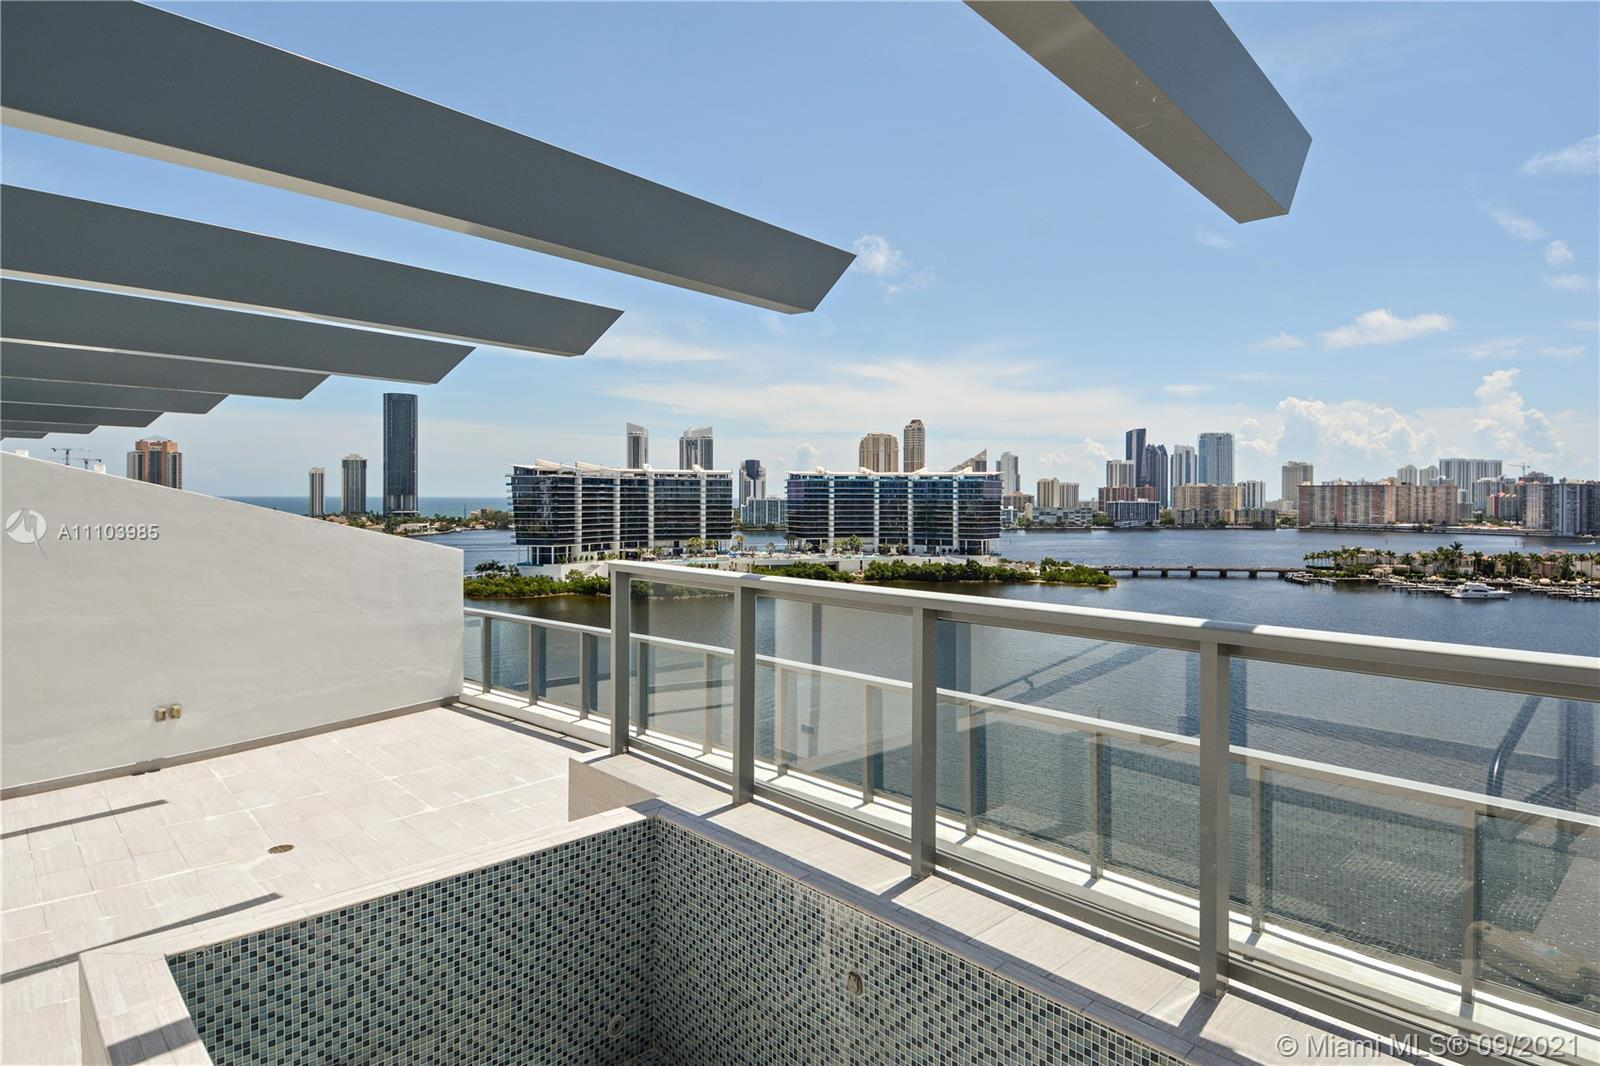 WOW! FABULOUS ECHO AVENTURA UPPER PENTHOUSE WITH ROOFTOP POOL! PRIME LINE WITH THE MOST EXQUISITE DI